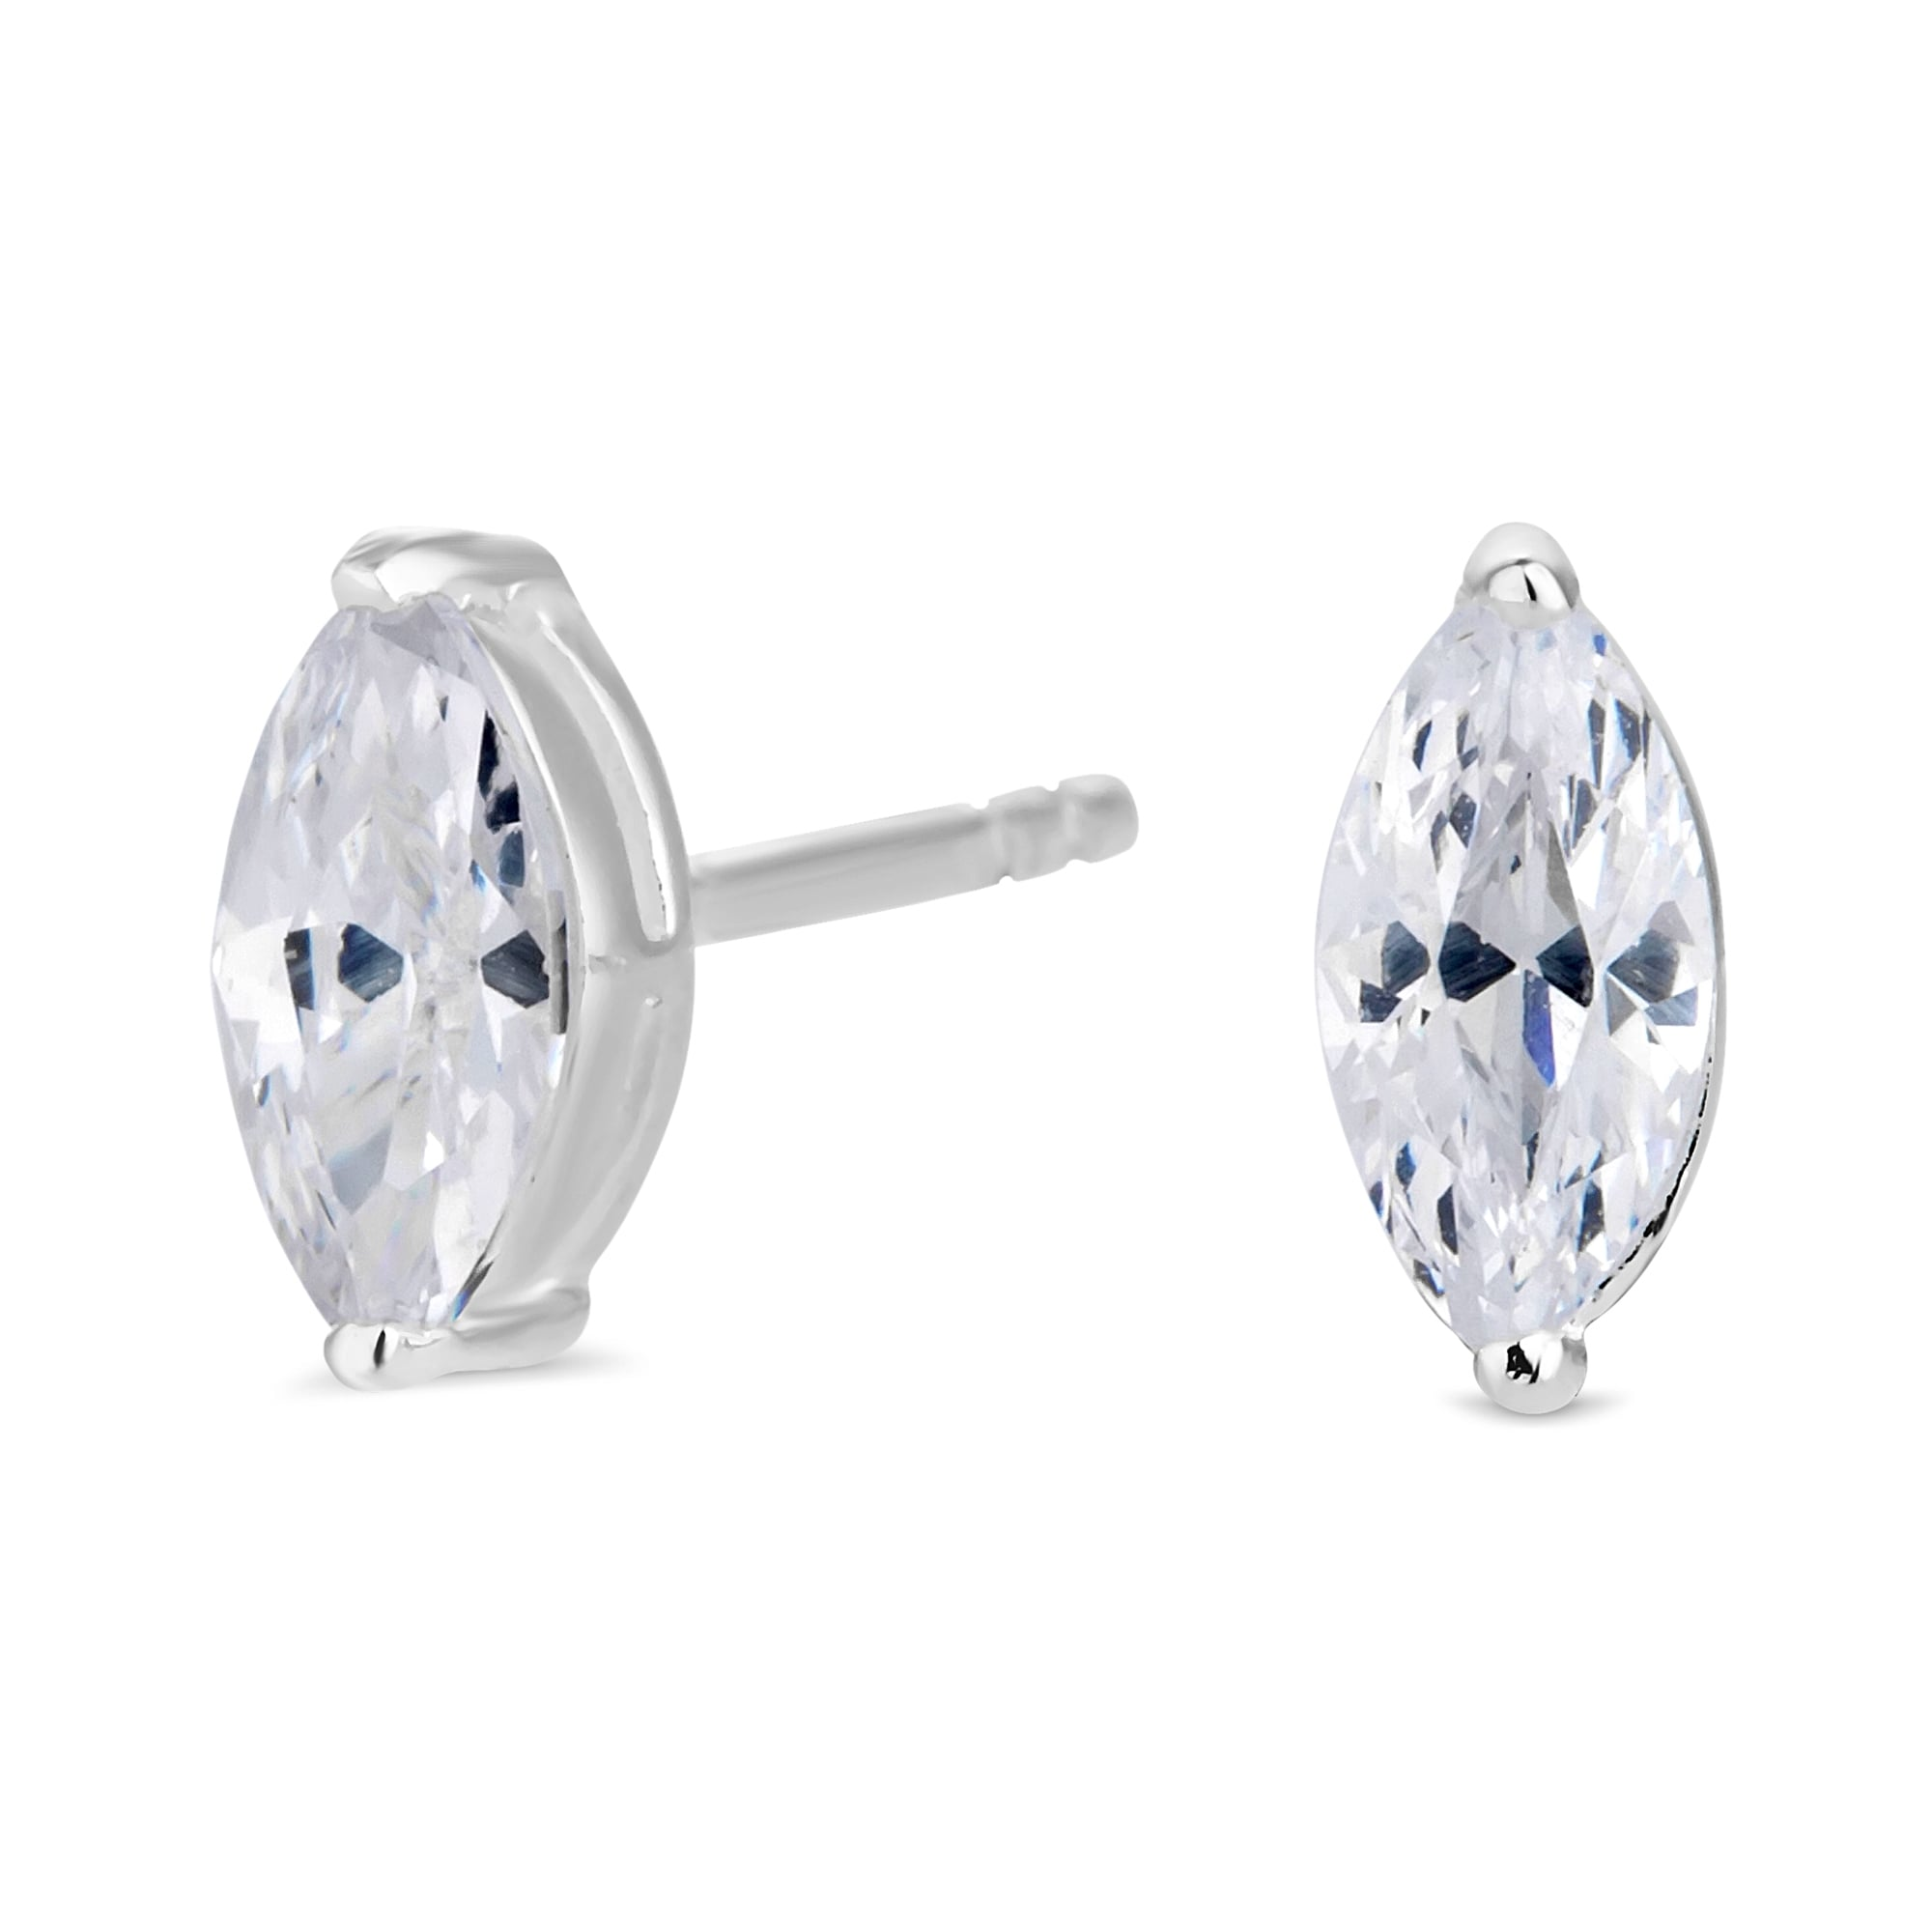 simply zirconia cubic sterling jewellery earrings stud zoom silver earring